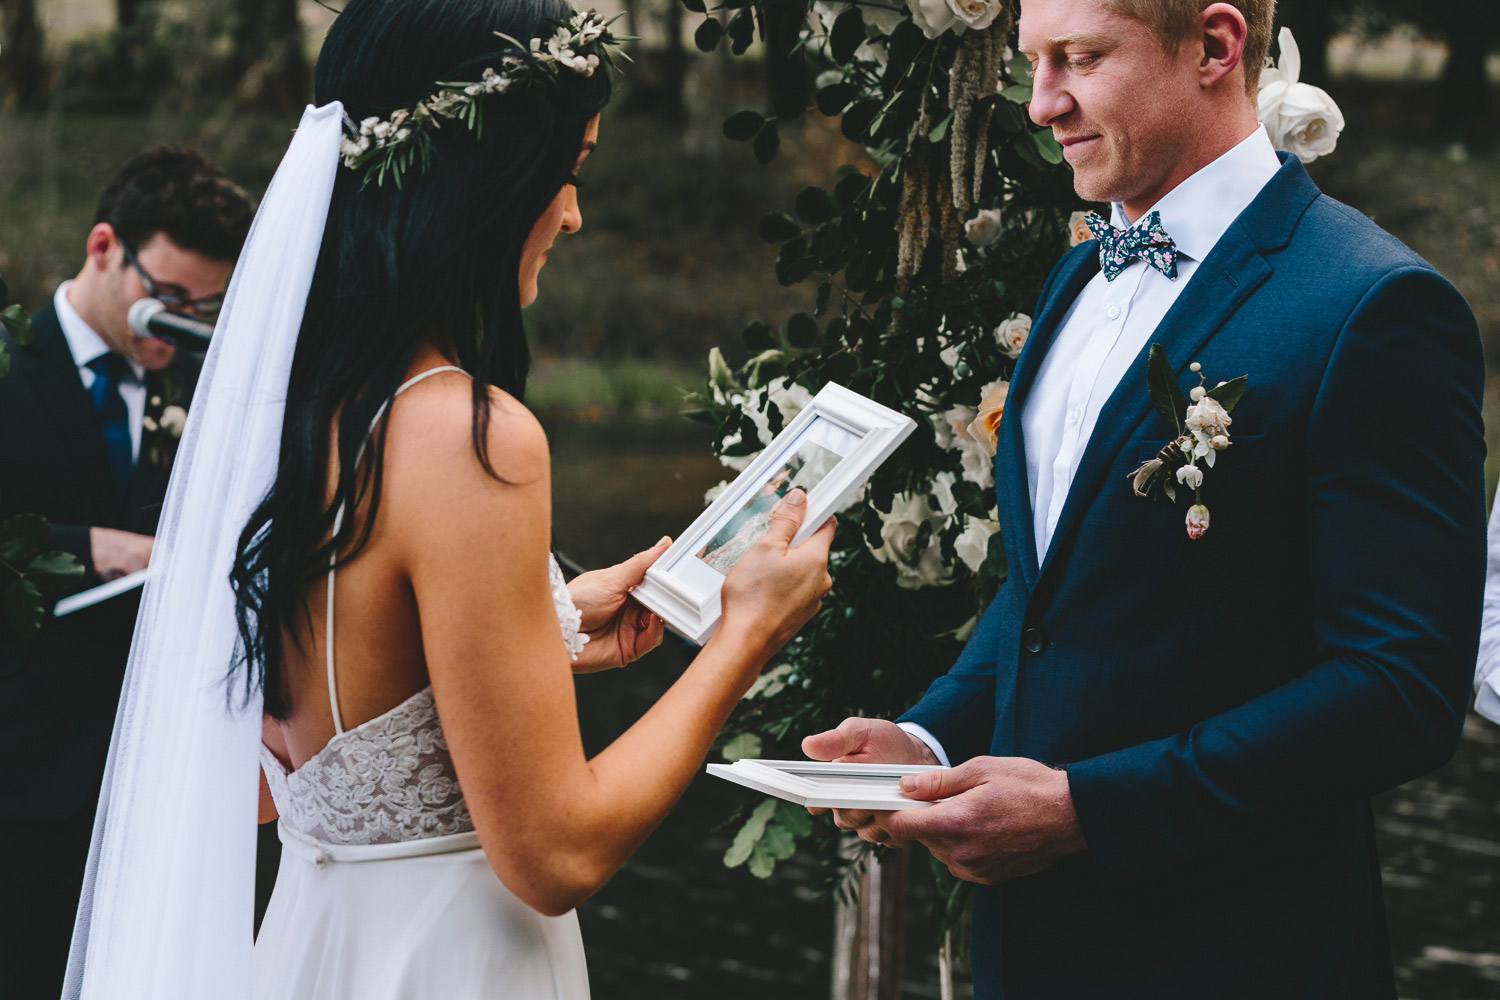 western-cape-photoghers-gen-scott-greyton-wedding-photography-charlie-ray68.jpg